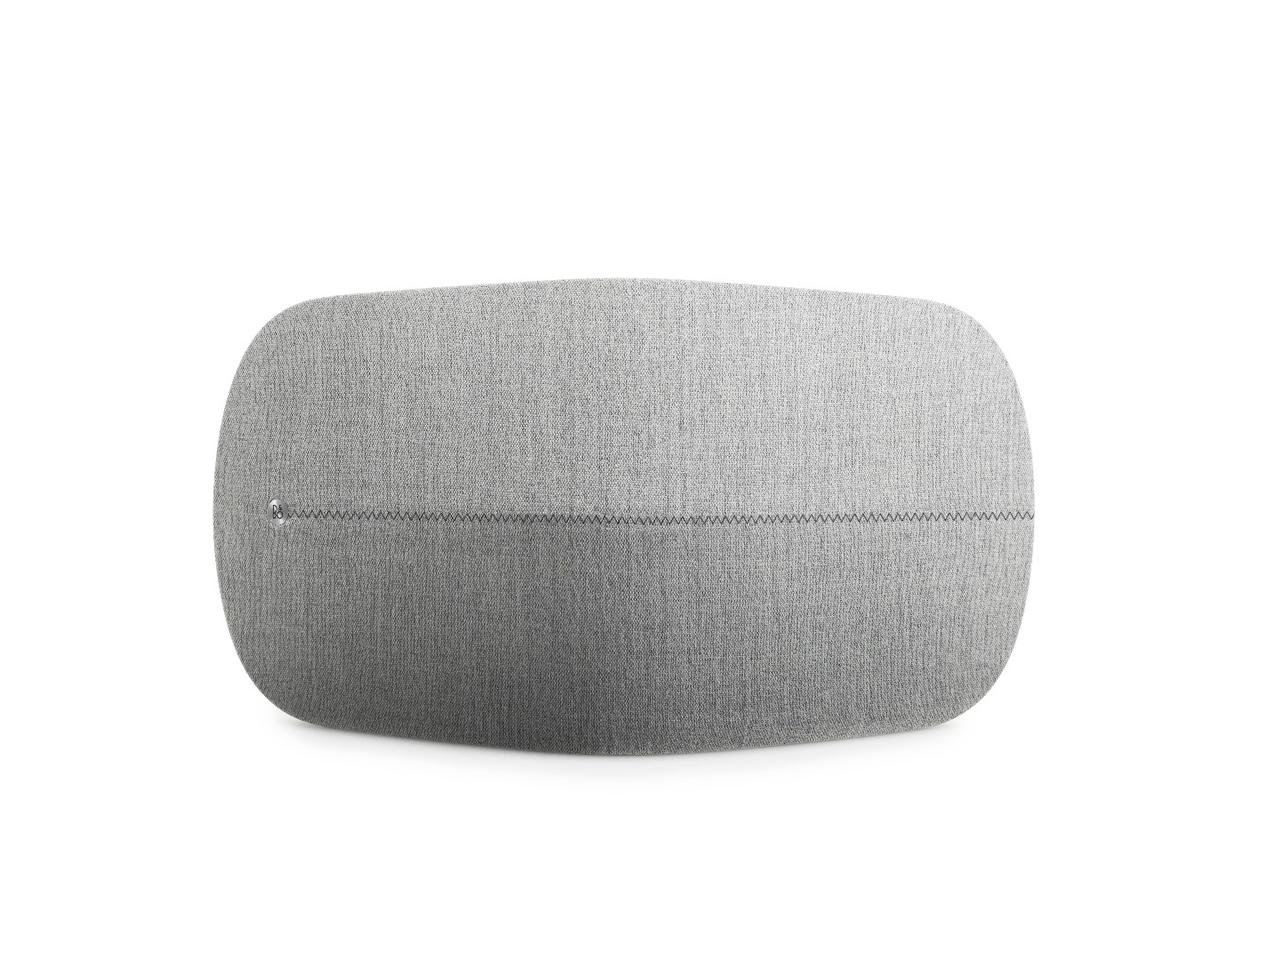 The BeoPlay A6 speaker packs a pair of tweeters and woofers each in the front and a full-range driver in the rear